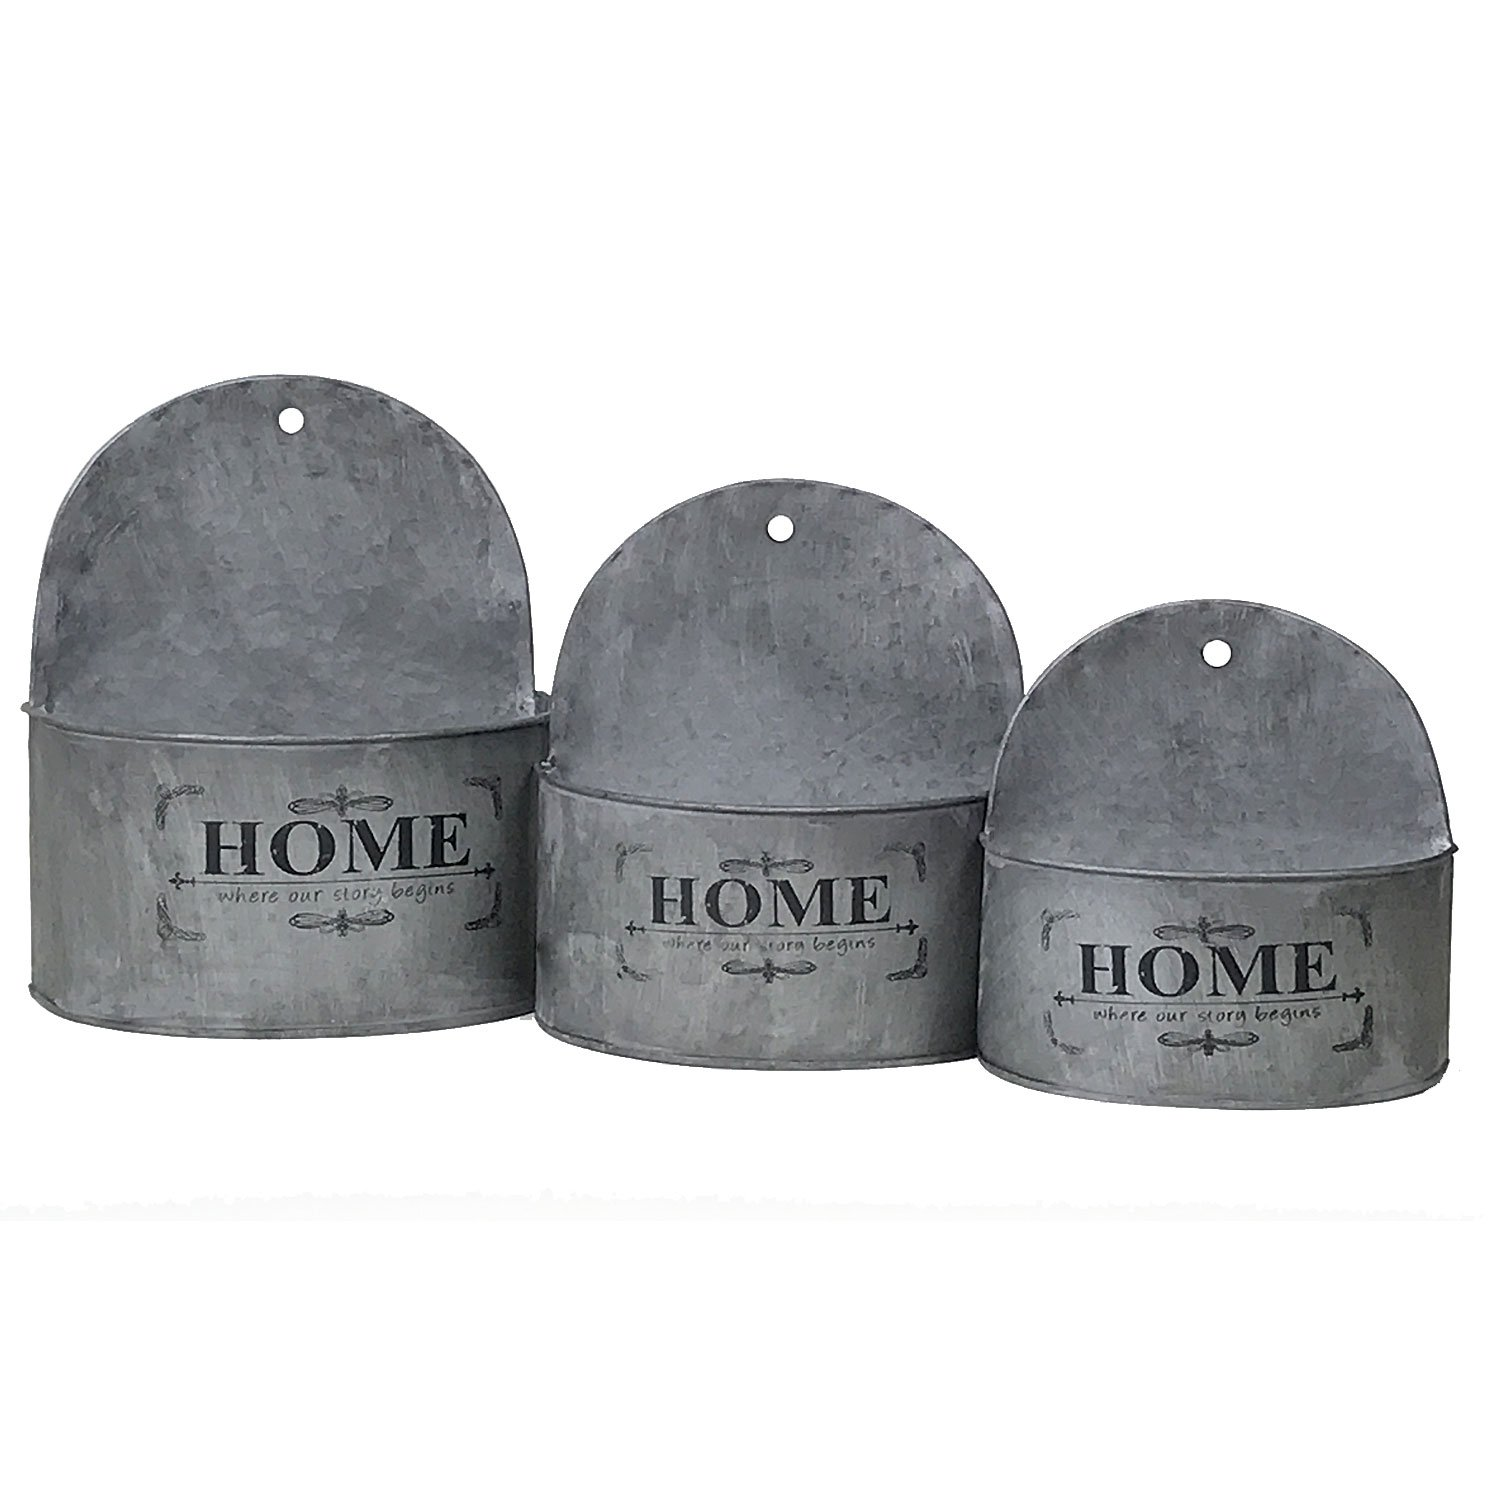 Rustic Tin Half-Round Wall Planter with Vintage Home Design, Farmhouse Style, Nesting Set of 3 by Arbor Lane